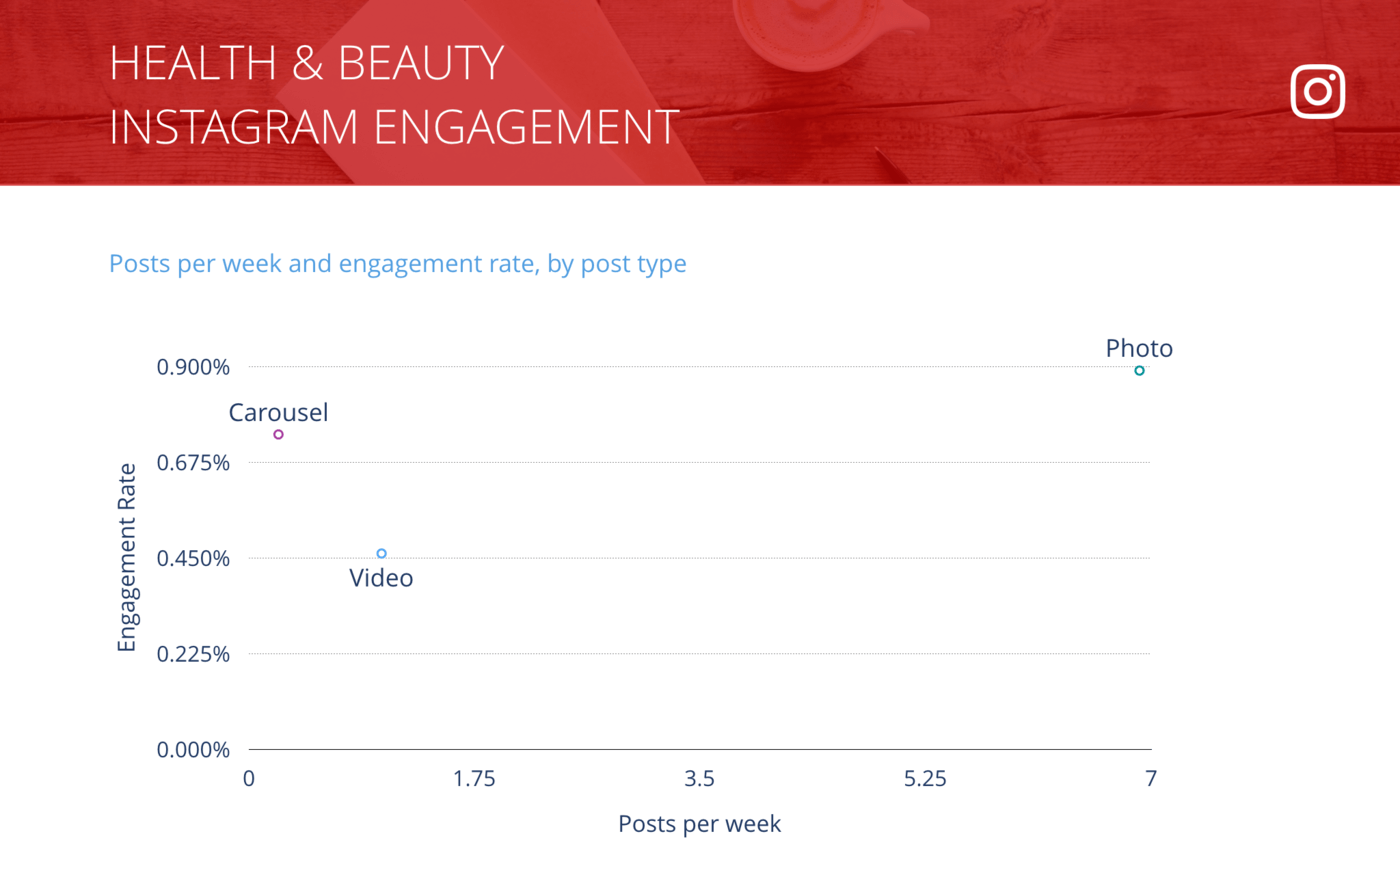 slide for Instagram Posts per Week vs. Engagement Rate per Post, Health & Beauty